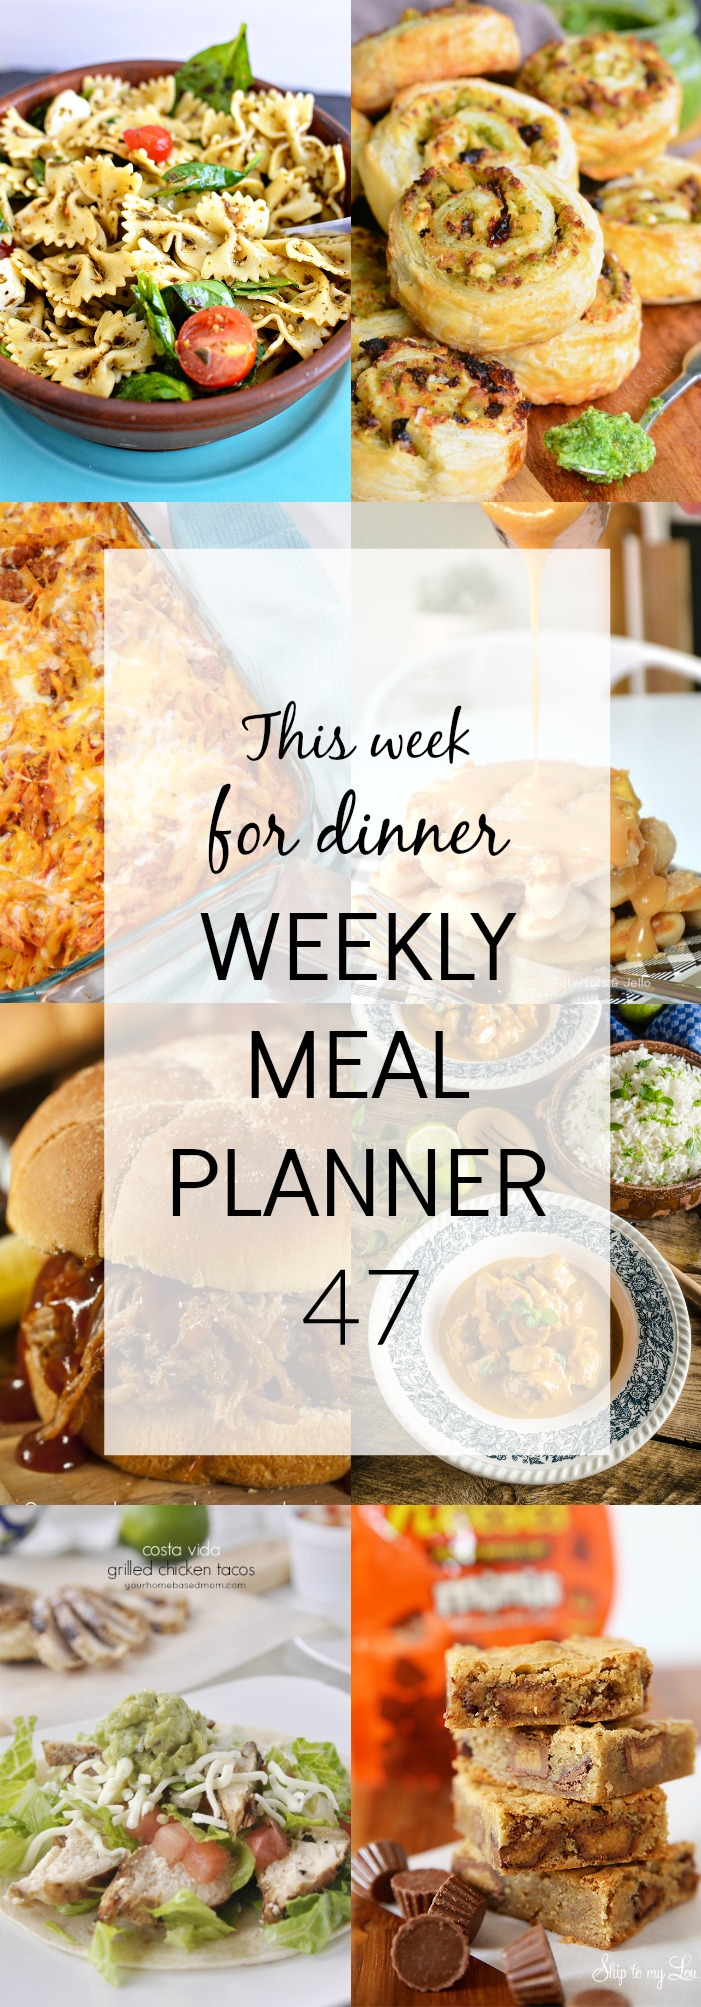 weekly meal plan ready and waiting for you! This week in th menu we have Pesto Caprese Pasta Salad, Pesto Chicken Pinwheels, Costa Vida Grilled Chicken Taco, Lasagna Bake with Penne Pasta, Curry Chicken, Slow Cooker BBQ Sandwiches, Churro Waffles with Dulce de Leche Topping, and for dessert Peanut Butter Cup Blondies!